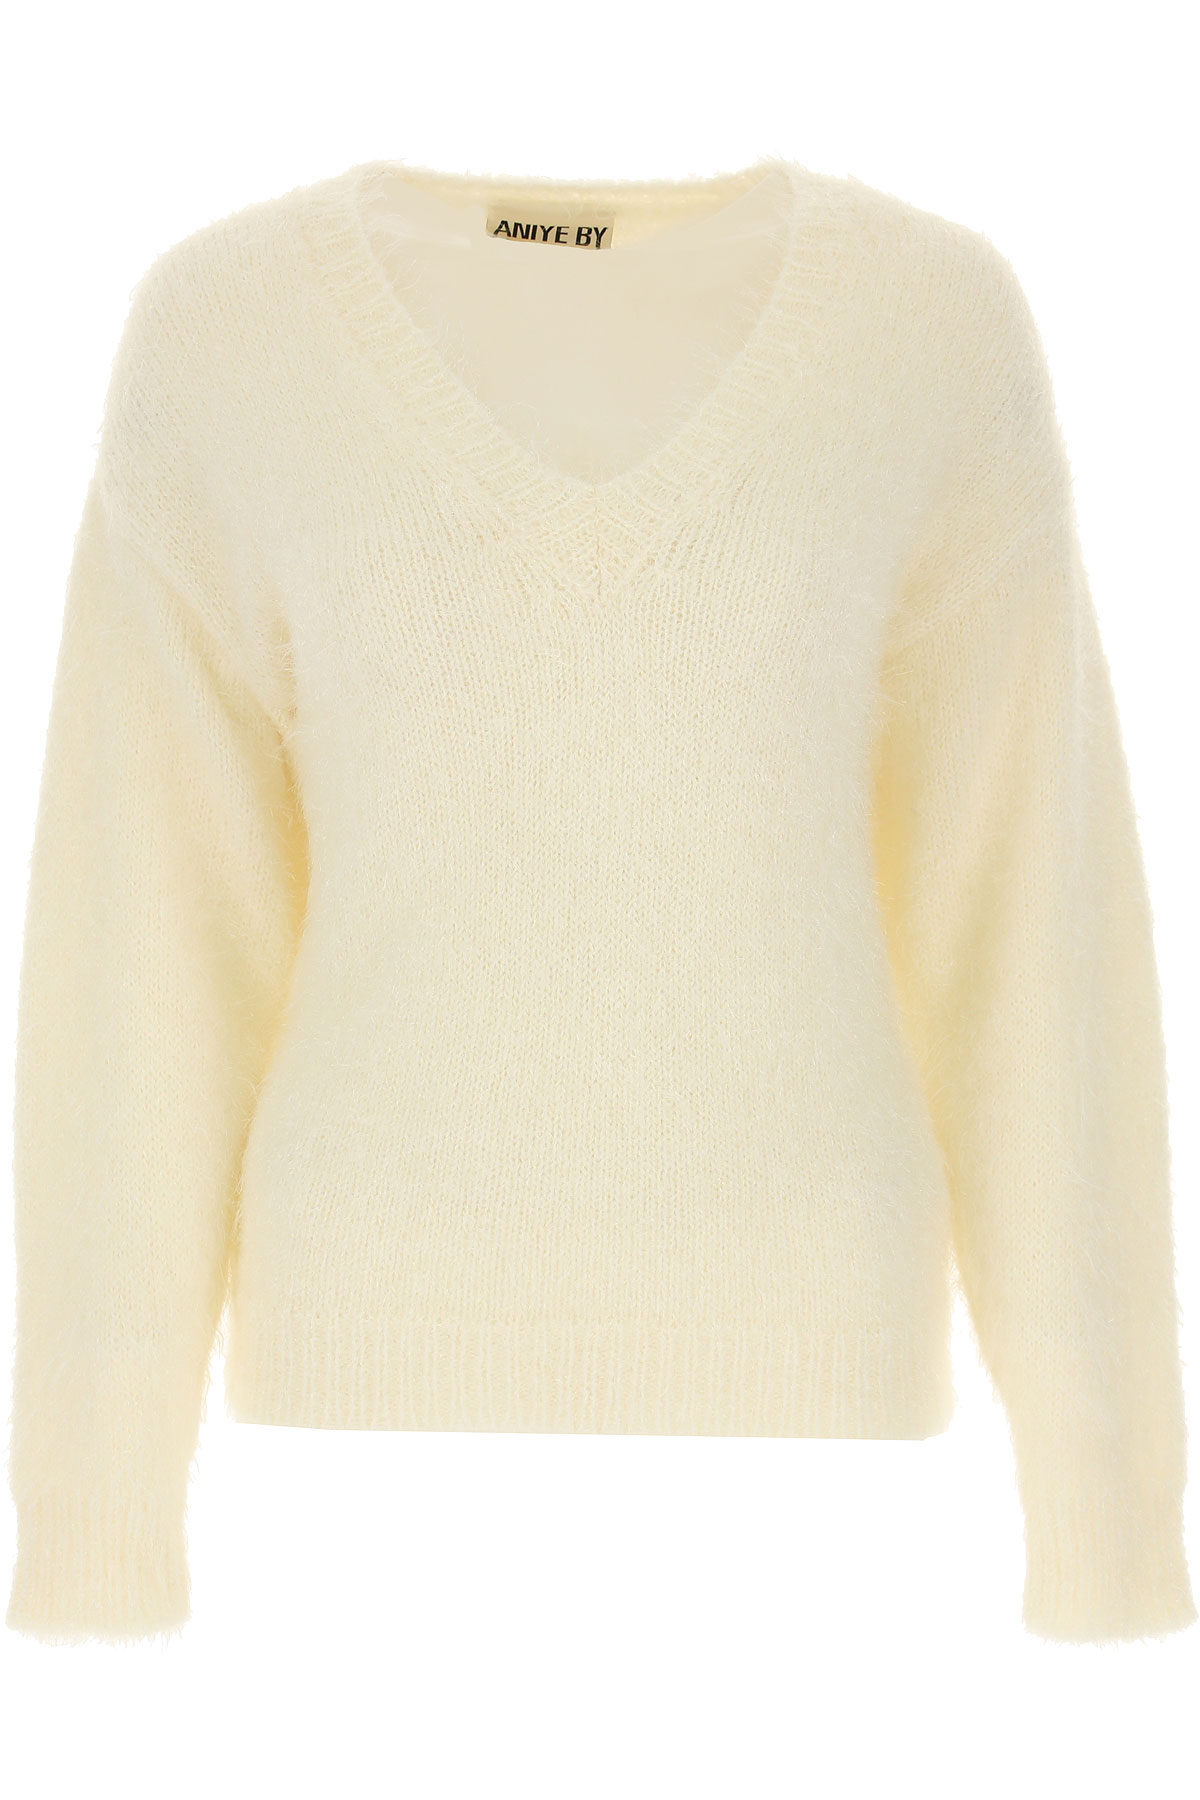 Aniye By Sweater for Women Jumper On Sale, White, Acrylic, 2019, 2 6